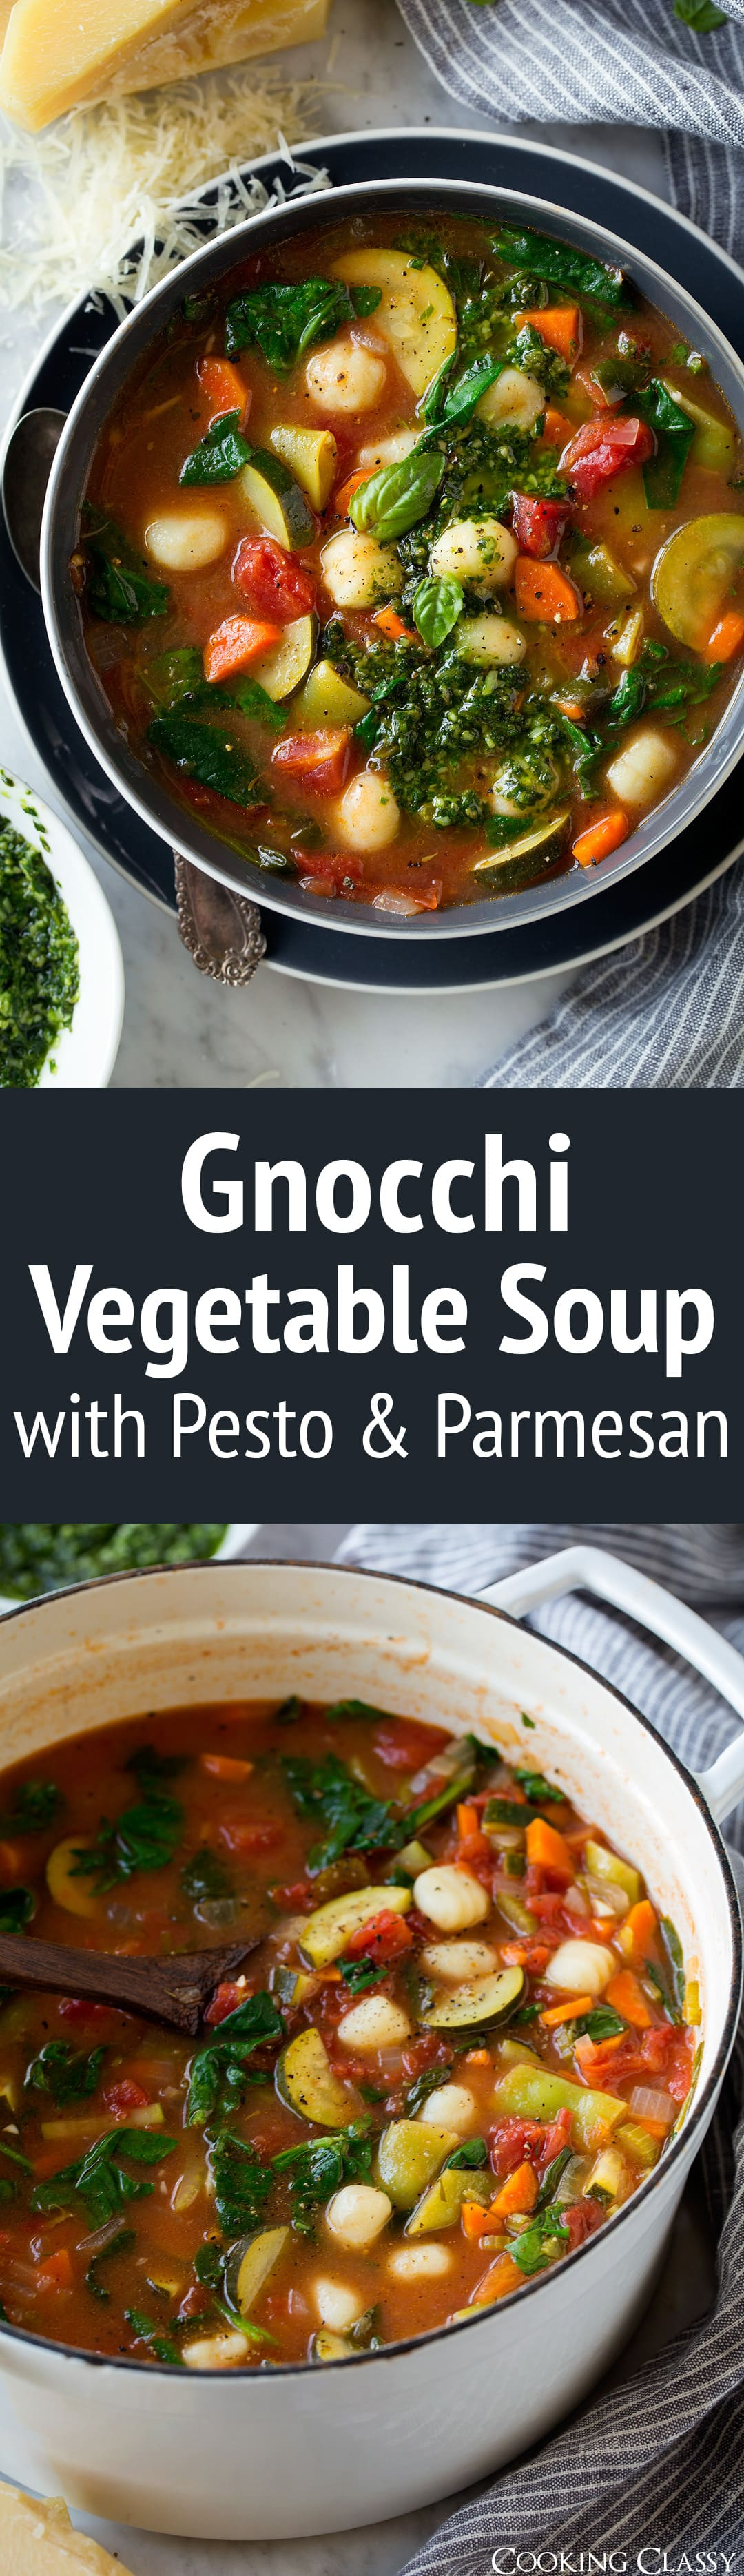 Gnocchi Vegetable Soup with Pesto and Parmesan - A hearty minestrone style soup with an upgrade of gnocchi and homemade pesto, in other words it's perfectly delicious! Just what you need on a cold winter day - or even a warm summer day when you have an abundance of fresh summer produce to use up. #soup #gnocchi #parmesan #vegetablesoup #dinner #healthyrecipe